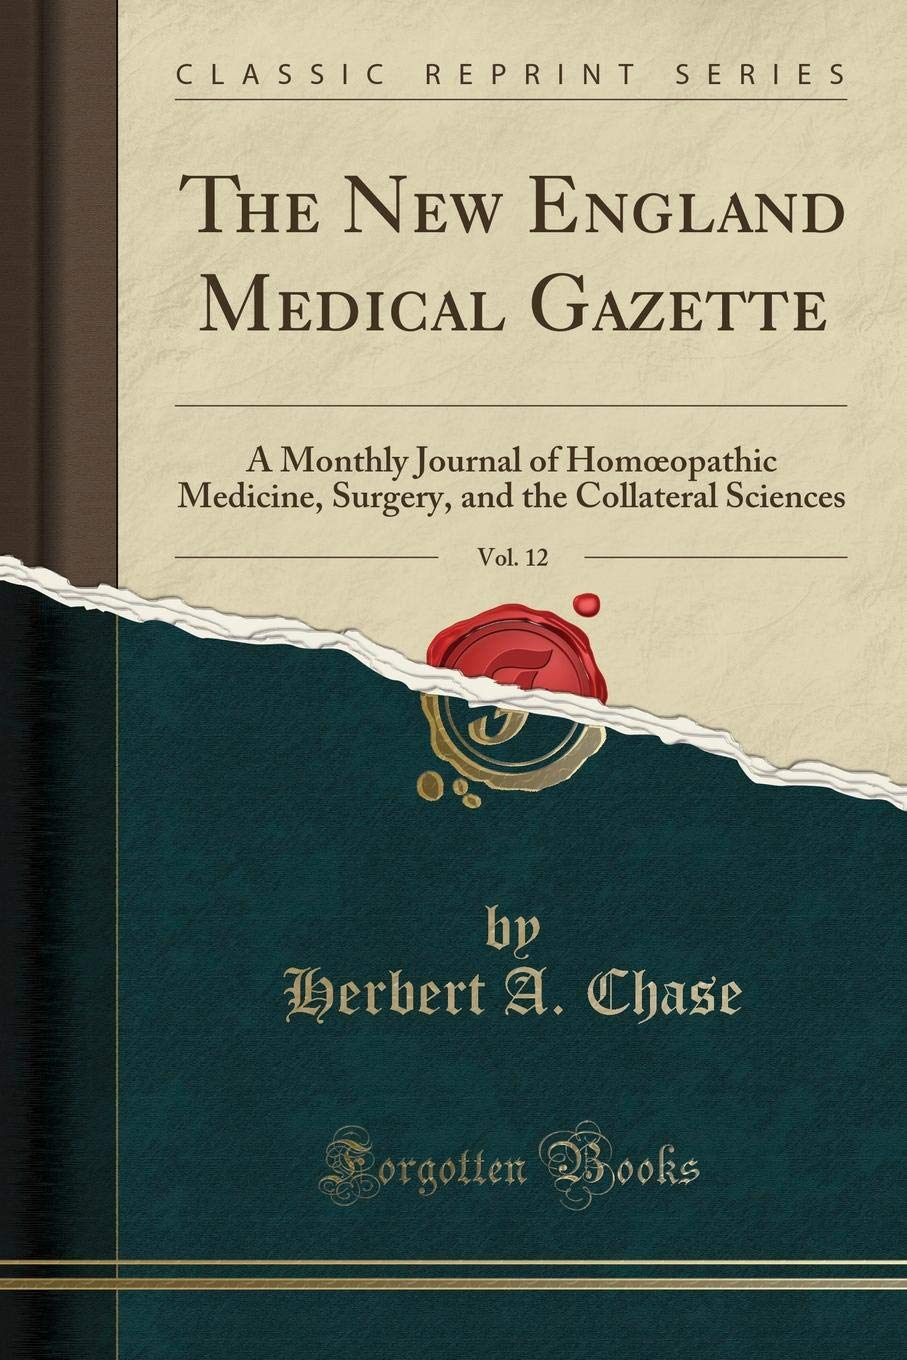 The New England Medical Gazette, Vol. 12: A Monthly Journal of Homœopathic Medicine, Surgery, and the Collateral Sciences (Classic Reprint) ebook